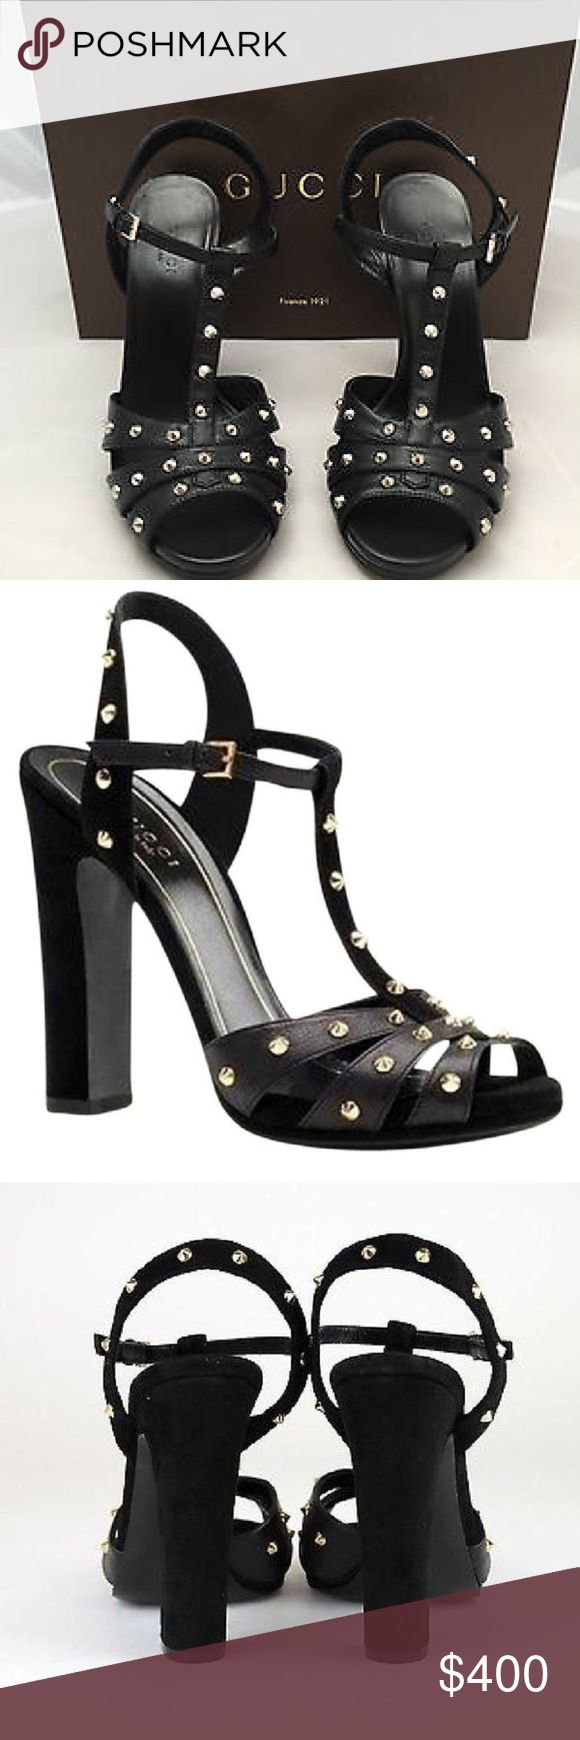 "Gucci Jacquelyn Studded Sandals Authentic Gucci ""Jacquelyn"" sandals in black leather with silver studs. Excellent near new condition,European size 39 1/2 Leather Upper And Leather Outsole, 5"" Heel, Width is B(M). Only signs of wear are on bottom soles from the two times I wore them.  Will ship in Gucci Shoebox. Gucci shopping bags are also available in my closet. Gucci Shoes"